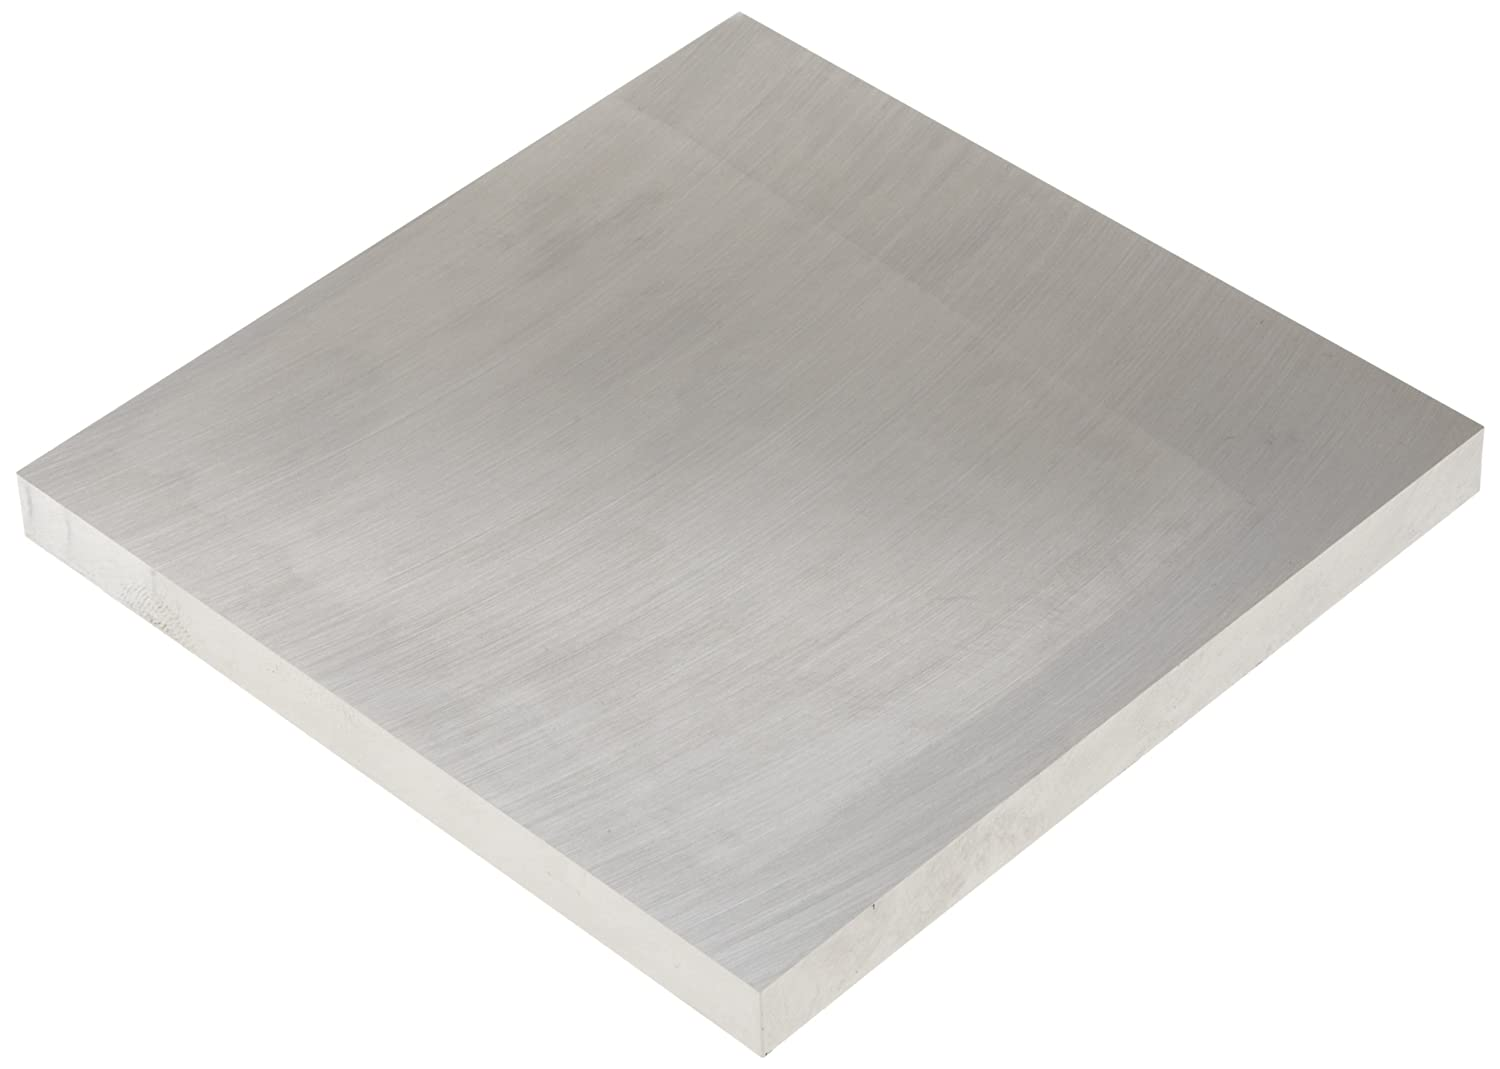 6061 Aluminum Sheet, Precision Ground, T651 Temper, Precision Tolerance, ASTM B209, 0.25' Thickness, 12' Width, 12' Length 0.25 Thickness 12 Width 12 Length Small Parts Inc SB-6061-0250-12-12